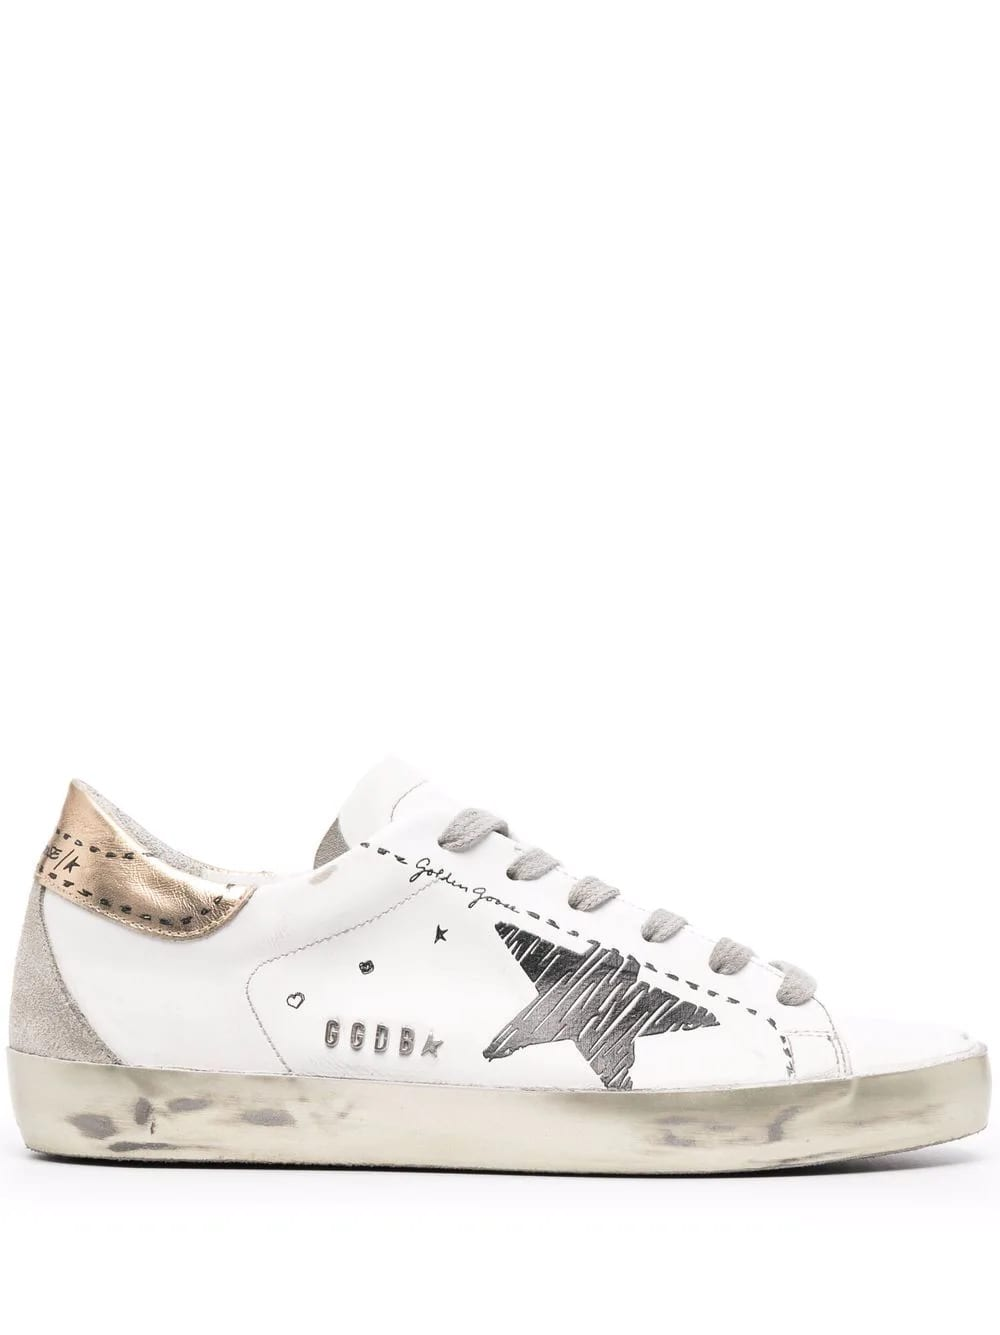 Golden Goose Woman White Super-star Sneakers With Printed Details And Golden Spoiler